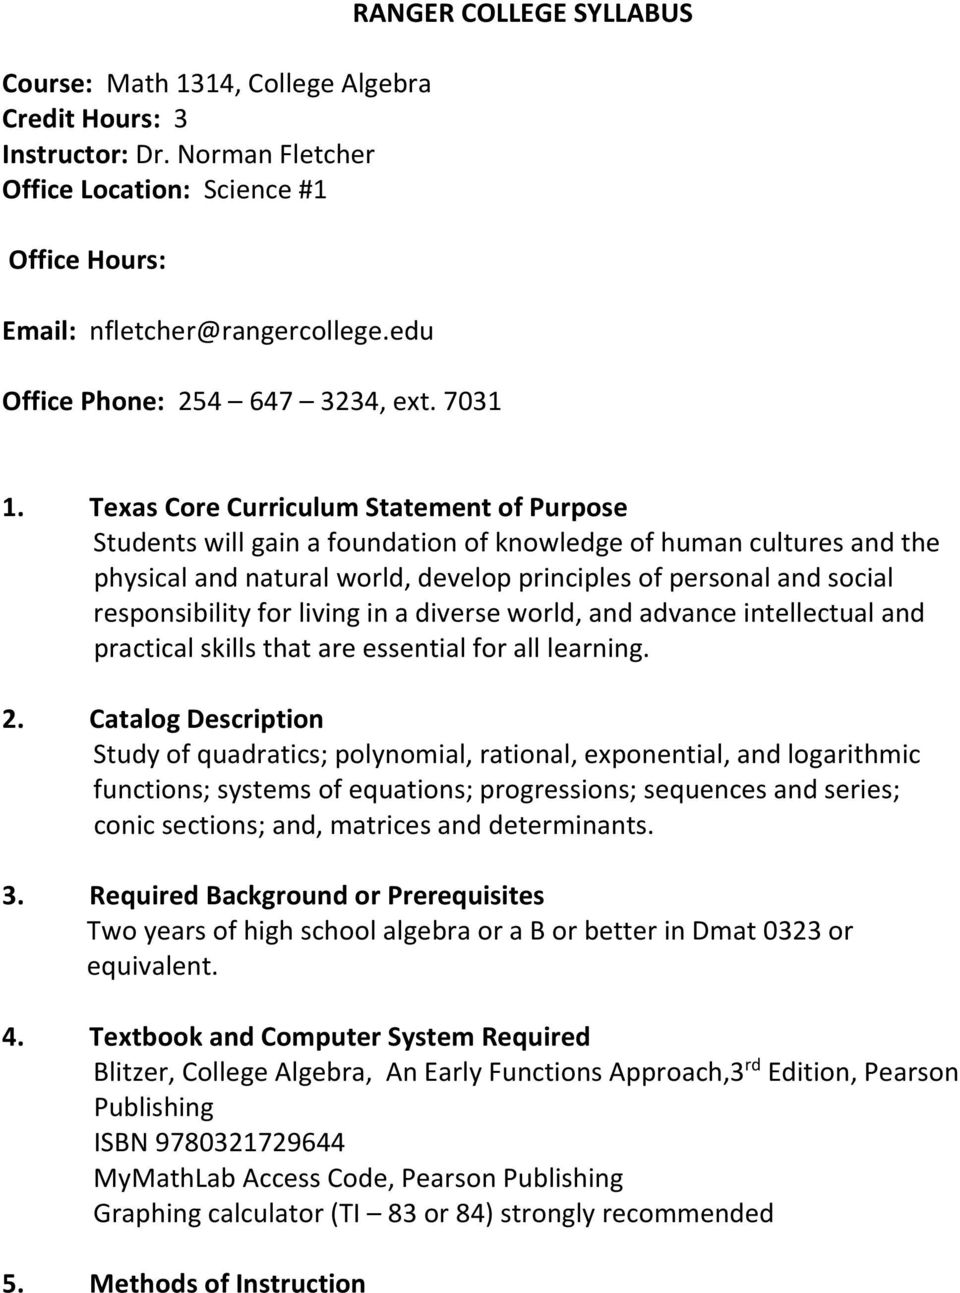 Texas Core Curriculum Statement of Purpose Students will gain a foundation of knowledge of human cultures and the physical and natural world, develop principles of personal and social responsibility